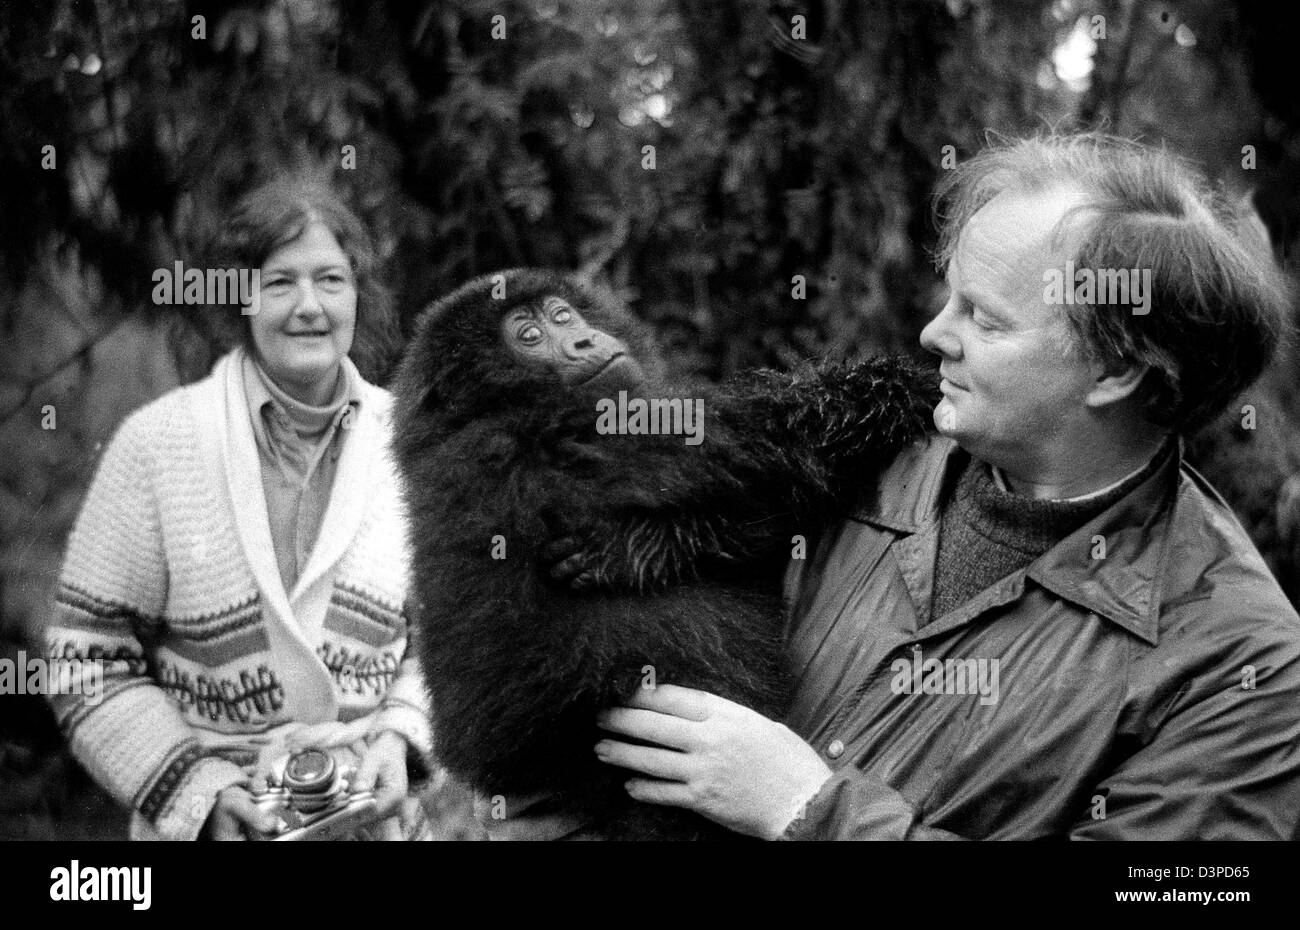 dian foossey Dian fossey (january 16, 1932 - december 26, 1985) was an american ethologist interested in gorillas she completed an extended study of several gorilla groups, observing them daily for years in the mountain forests of rwanda.